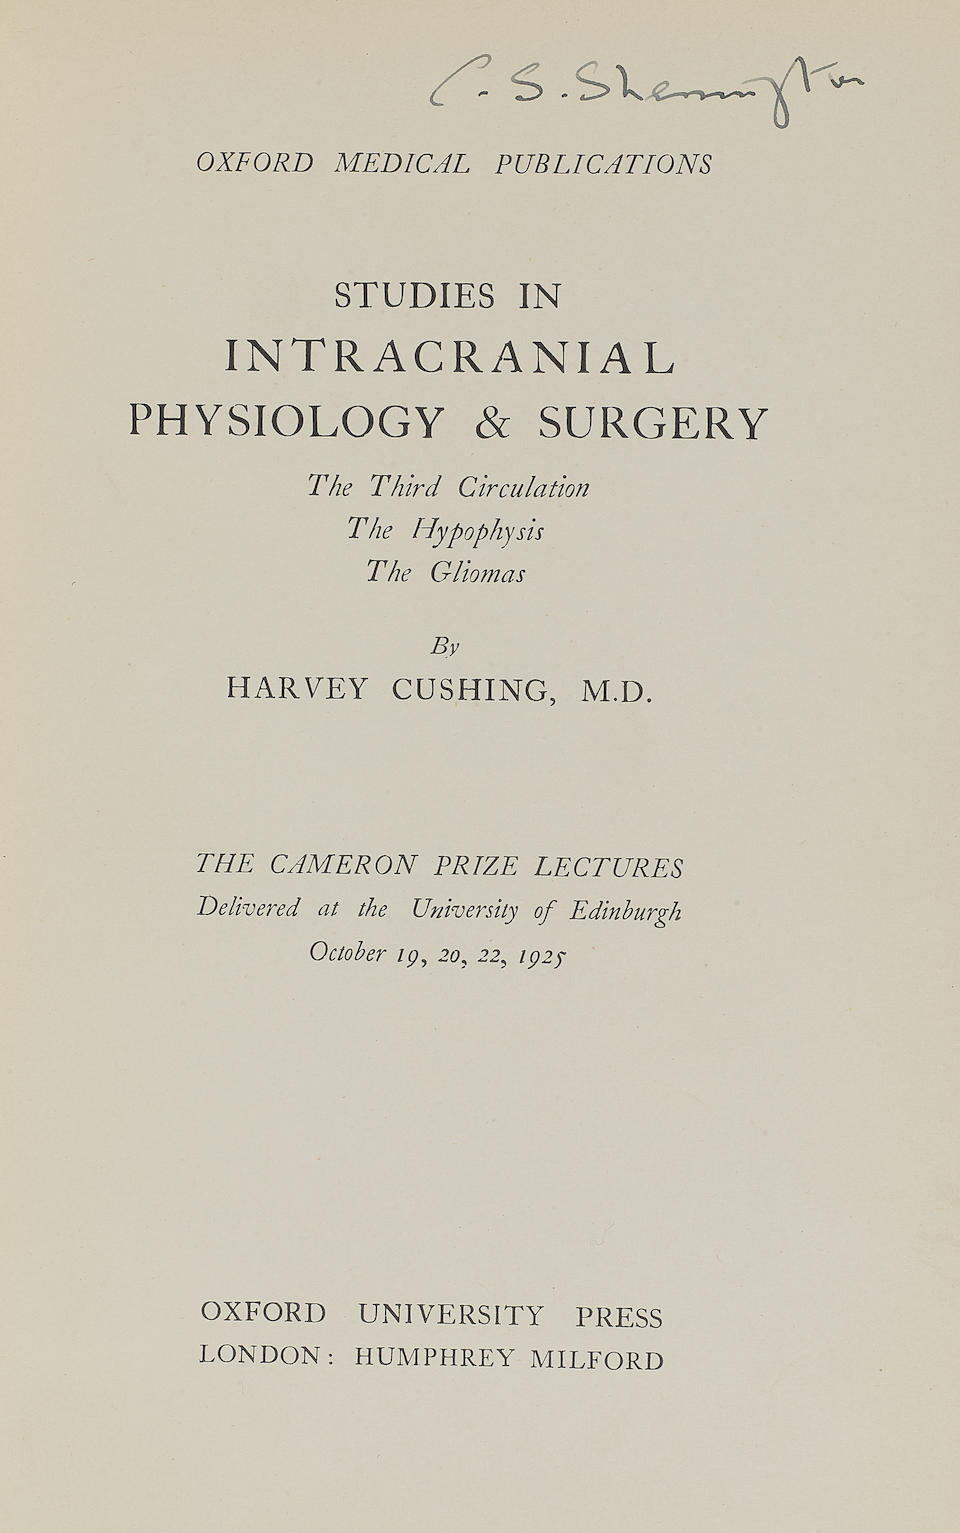 CUSHING, HARVEY. 1869-1939. Studies in Intracranial Physiology And Surgery. The Third Circulation. The Hypophysis. The Gliomas. Oxford: Oxford University Press, 1926.